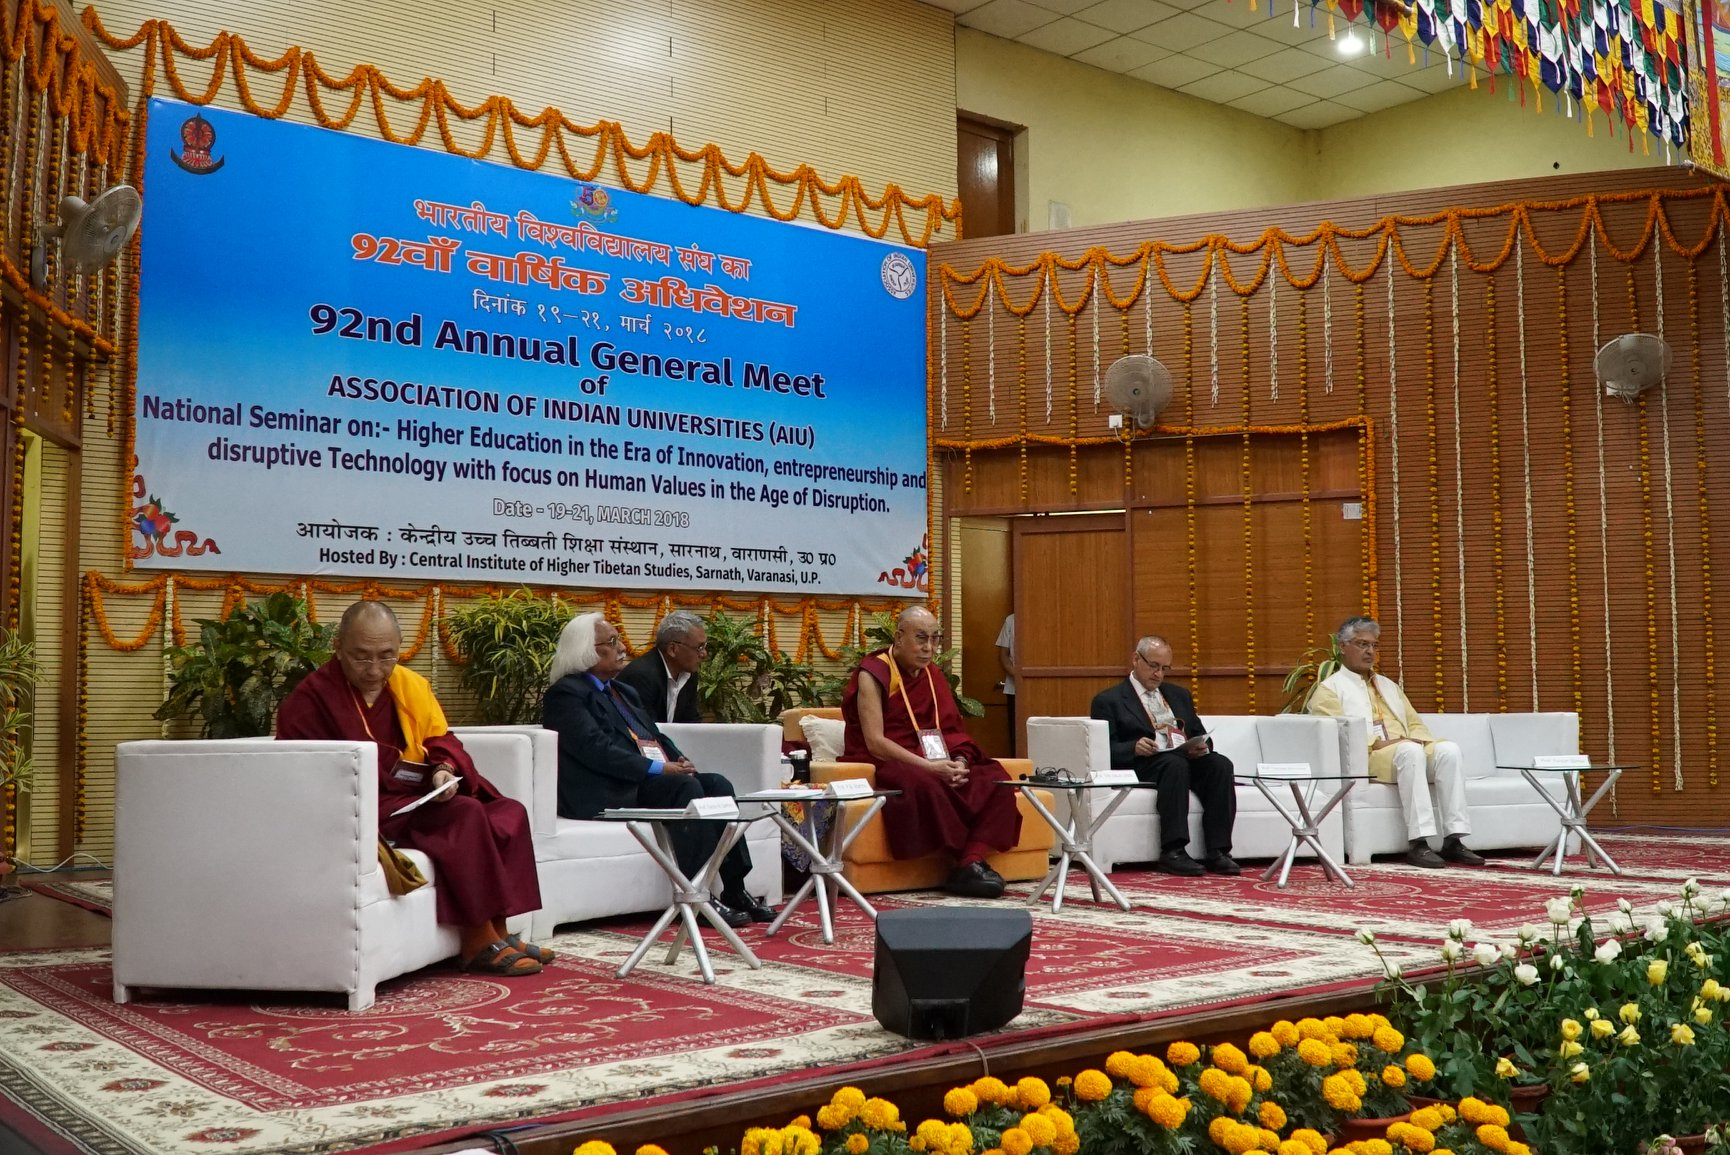 165f8a00a03f ... 92nd Annual Meet of Association of Indian Universities at Central  Institute of Higher Tibetan Studies, Sarnath in Varanasi, 19 March 2018.  Photo/CIHTS